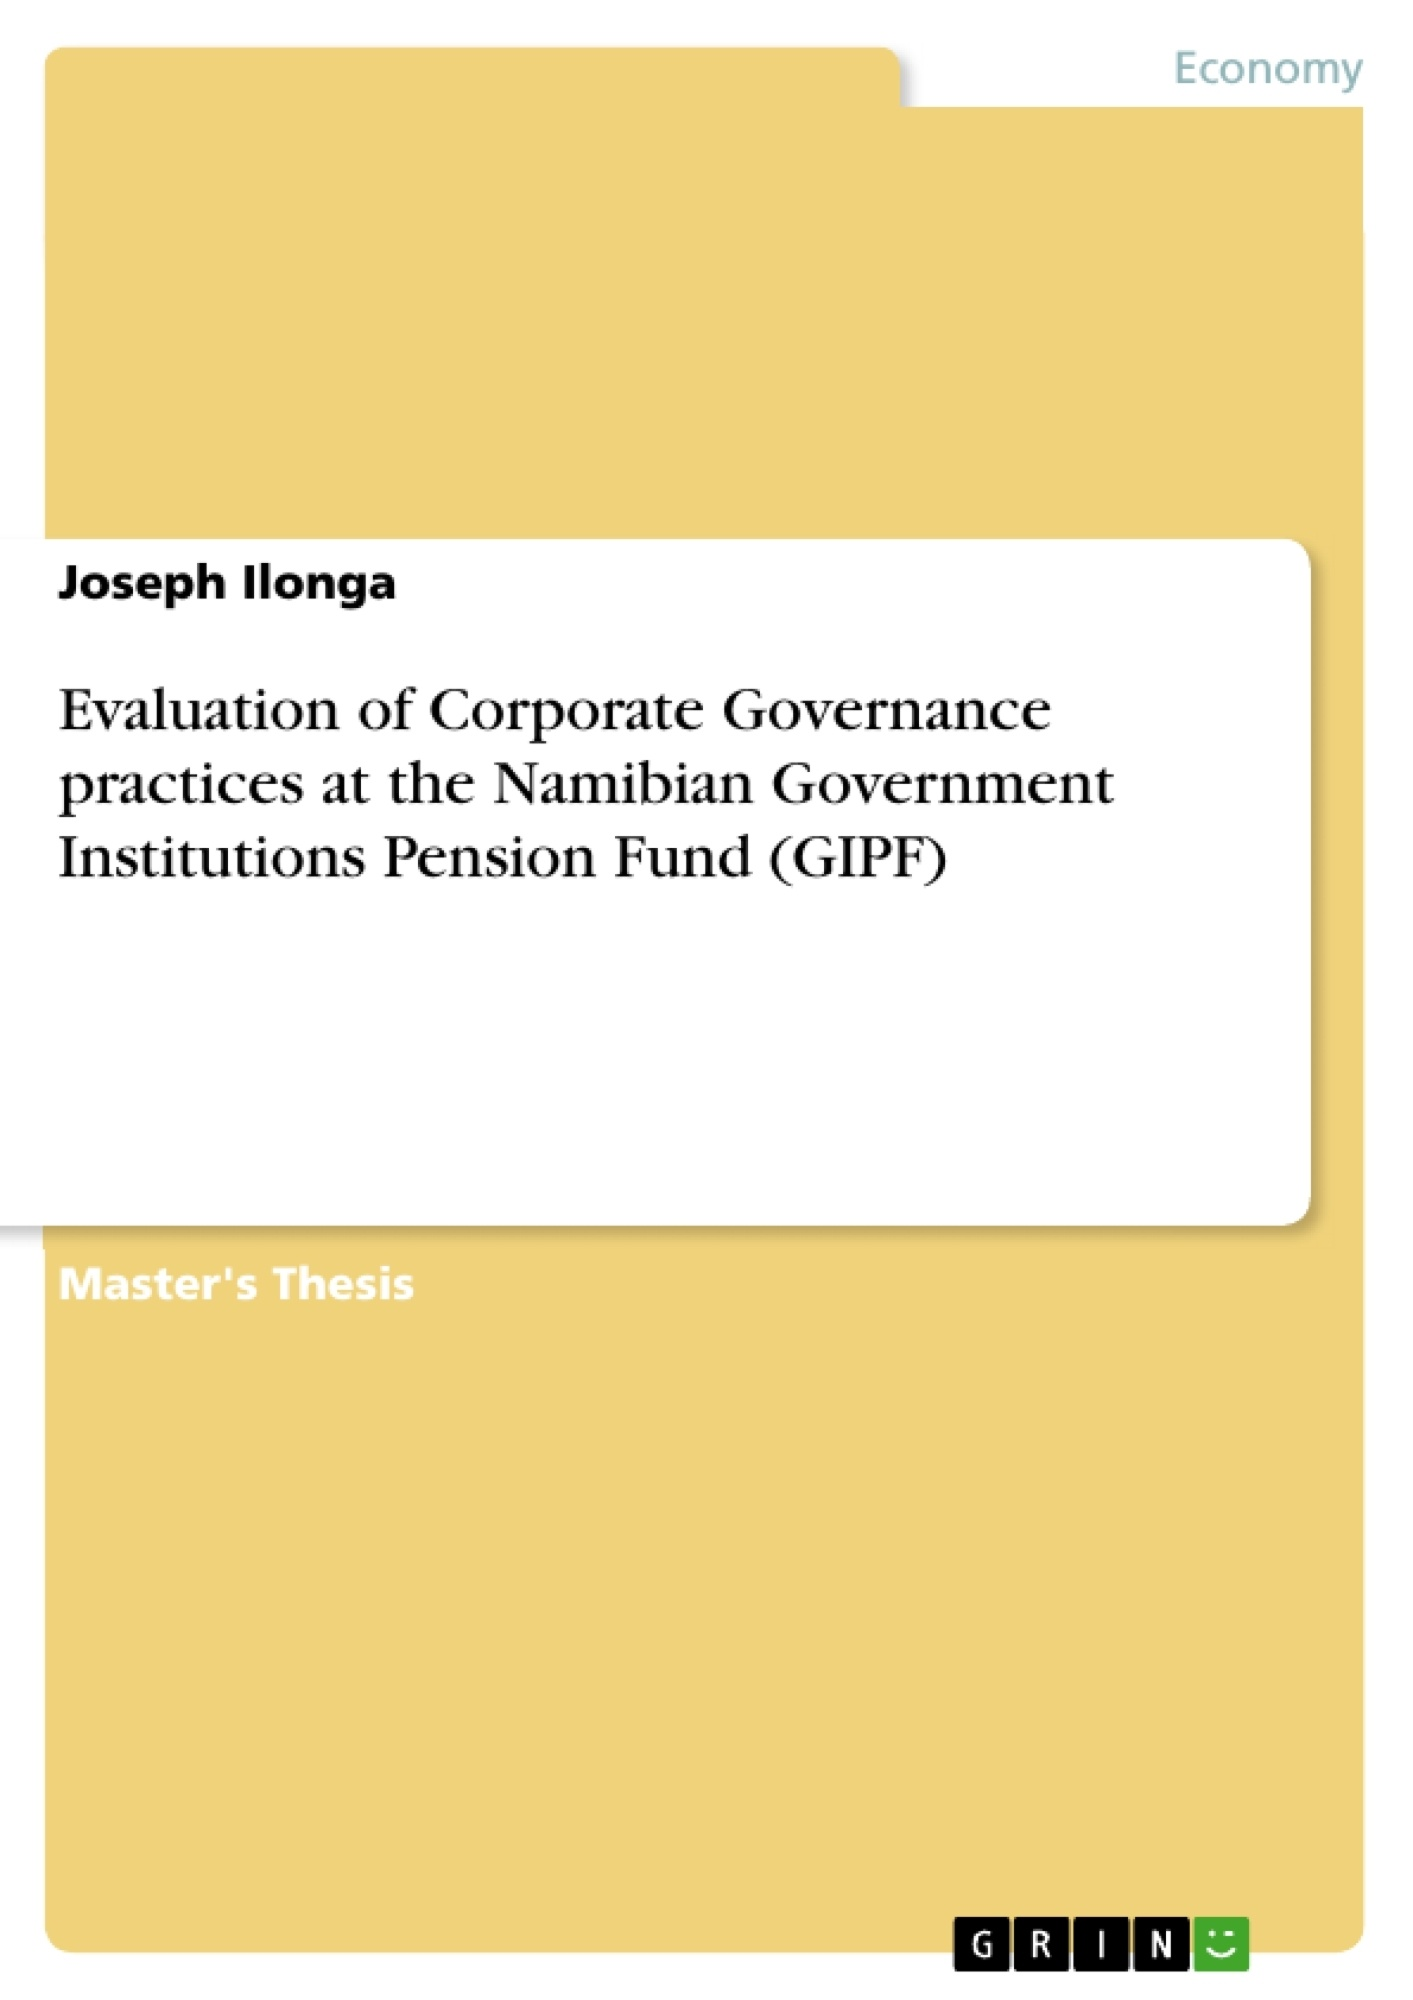 evaluation of corporate governance practices at the namibian